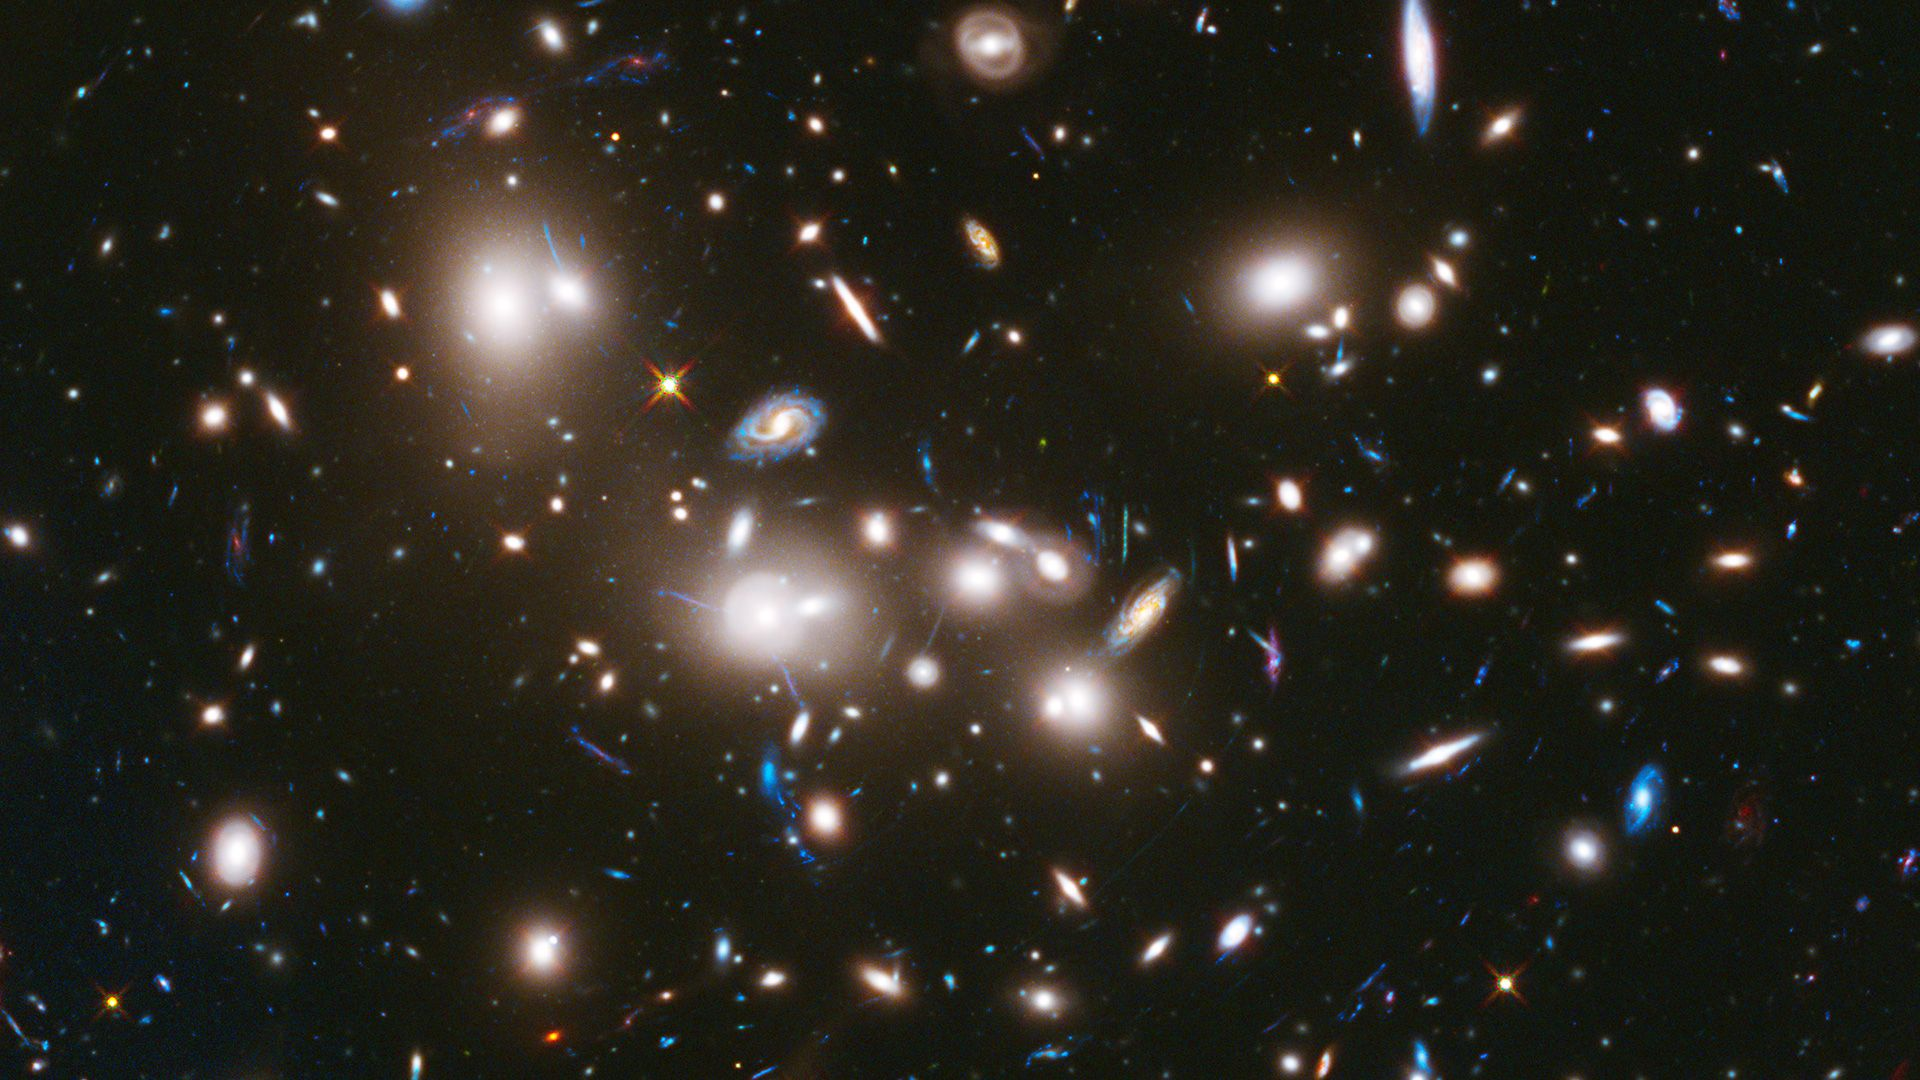 hubble images super high resolution - Google Search ...